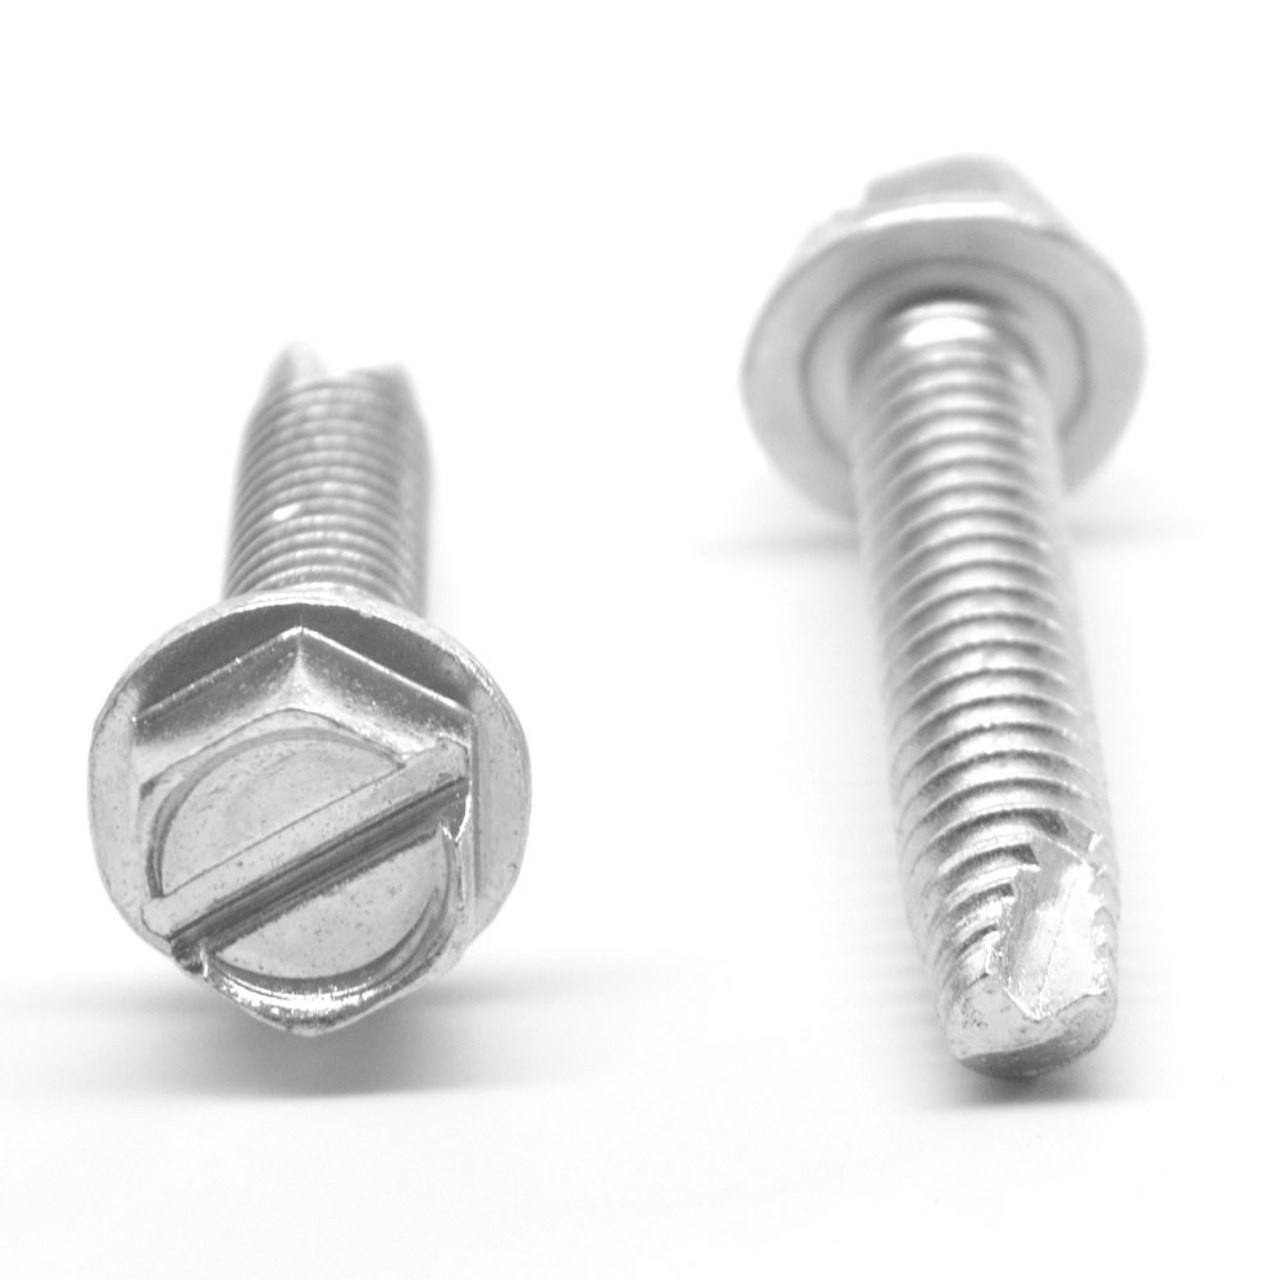 #10-32 x 3/8 Fine Thread Thread Cutting Screw Slotted Hex Washer Head Type 23 Low Carbon Steel Zinc Plated